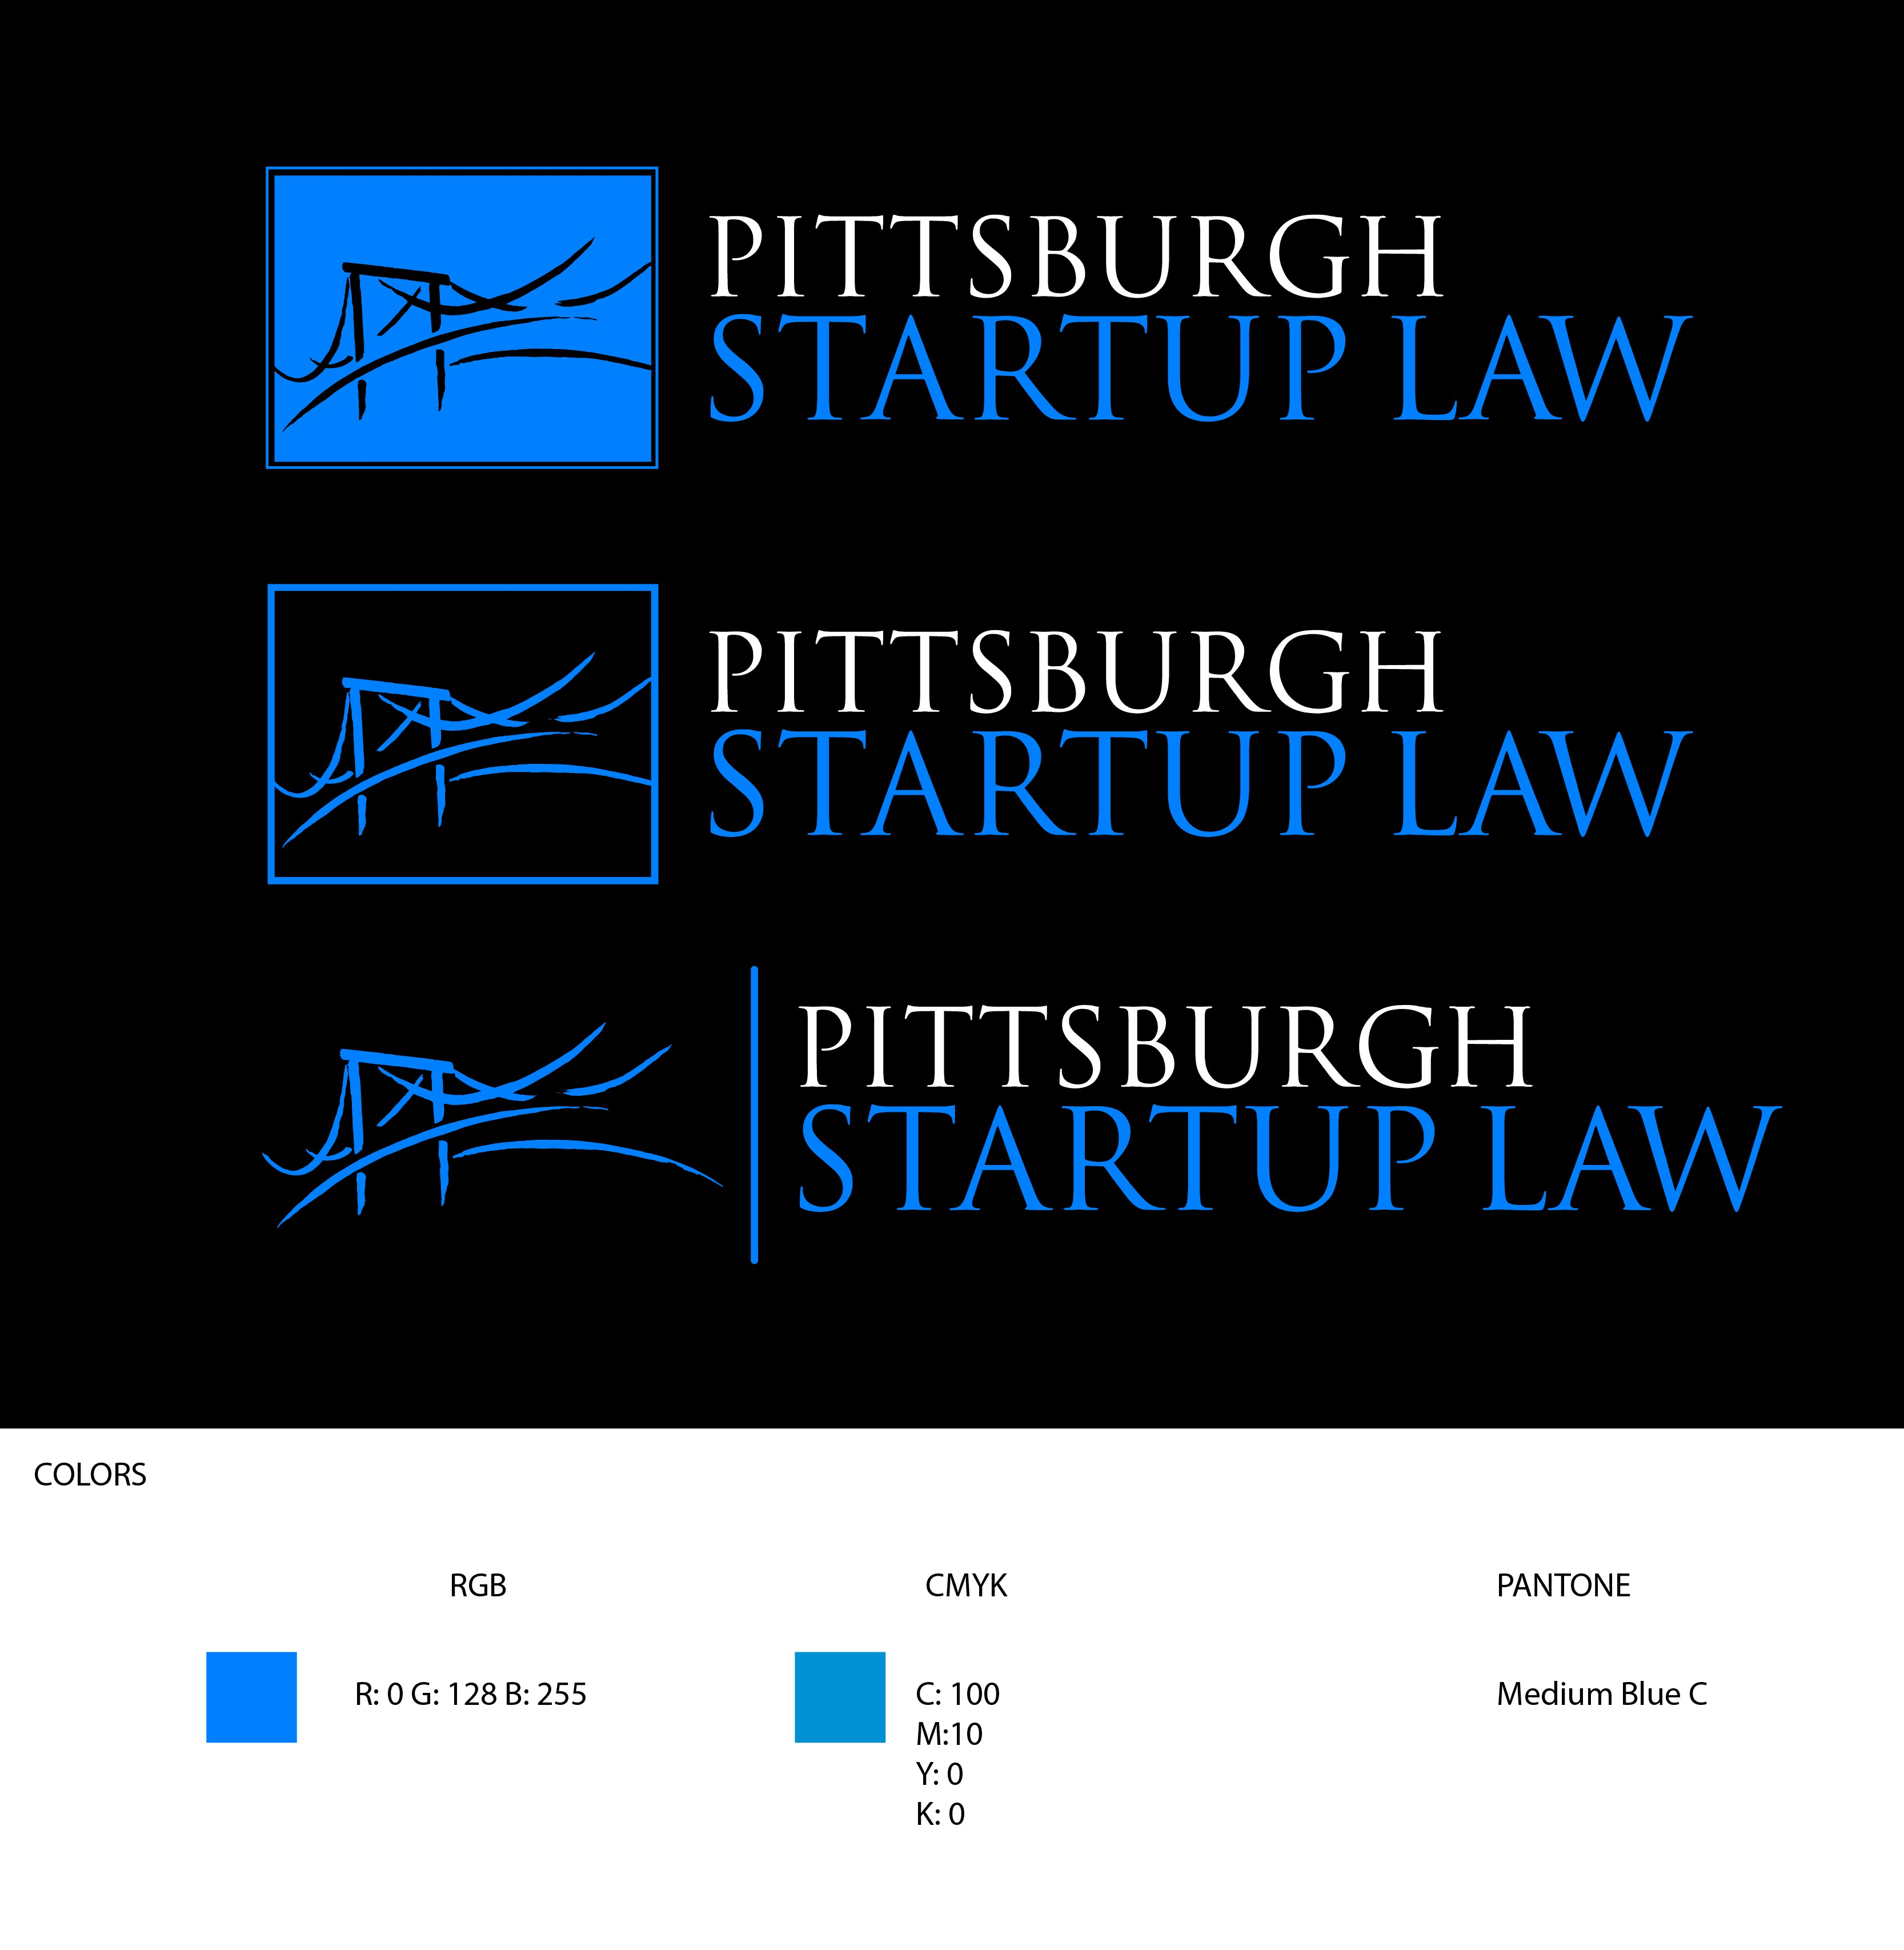 Logo redesign for company focused on startup legal services